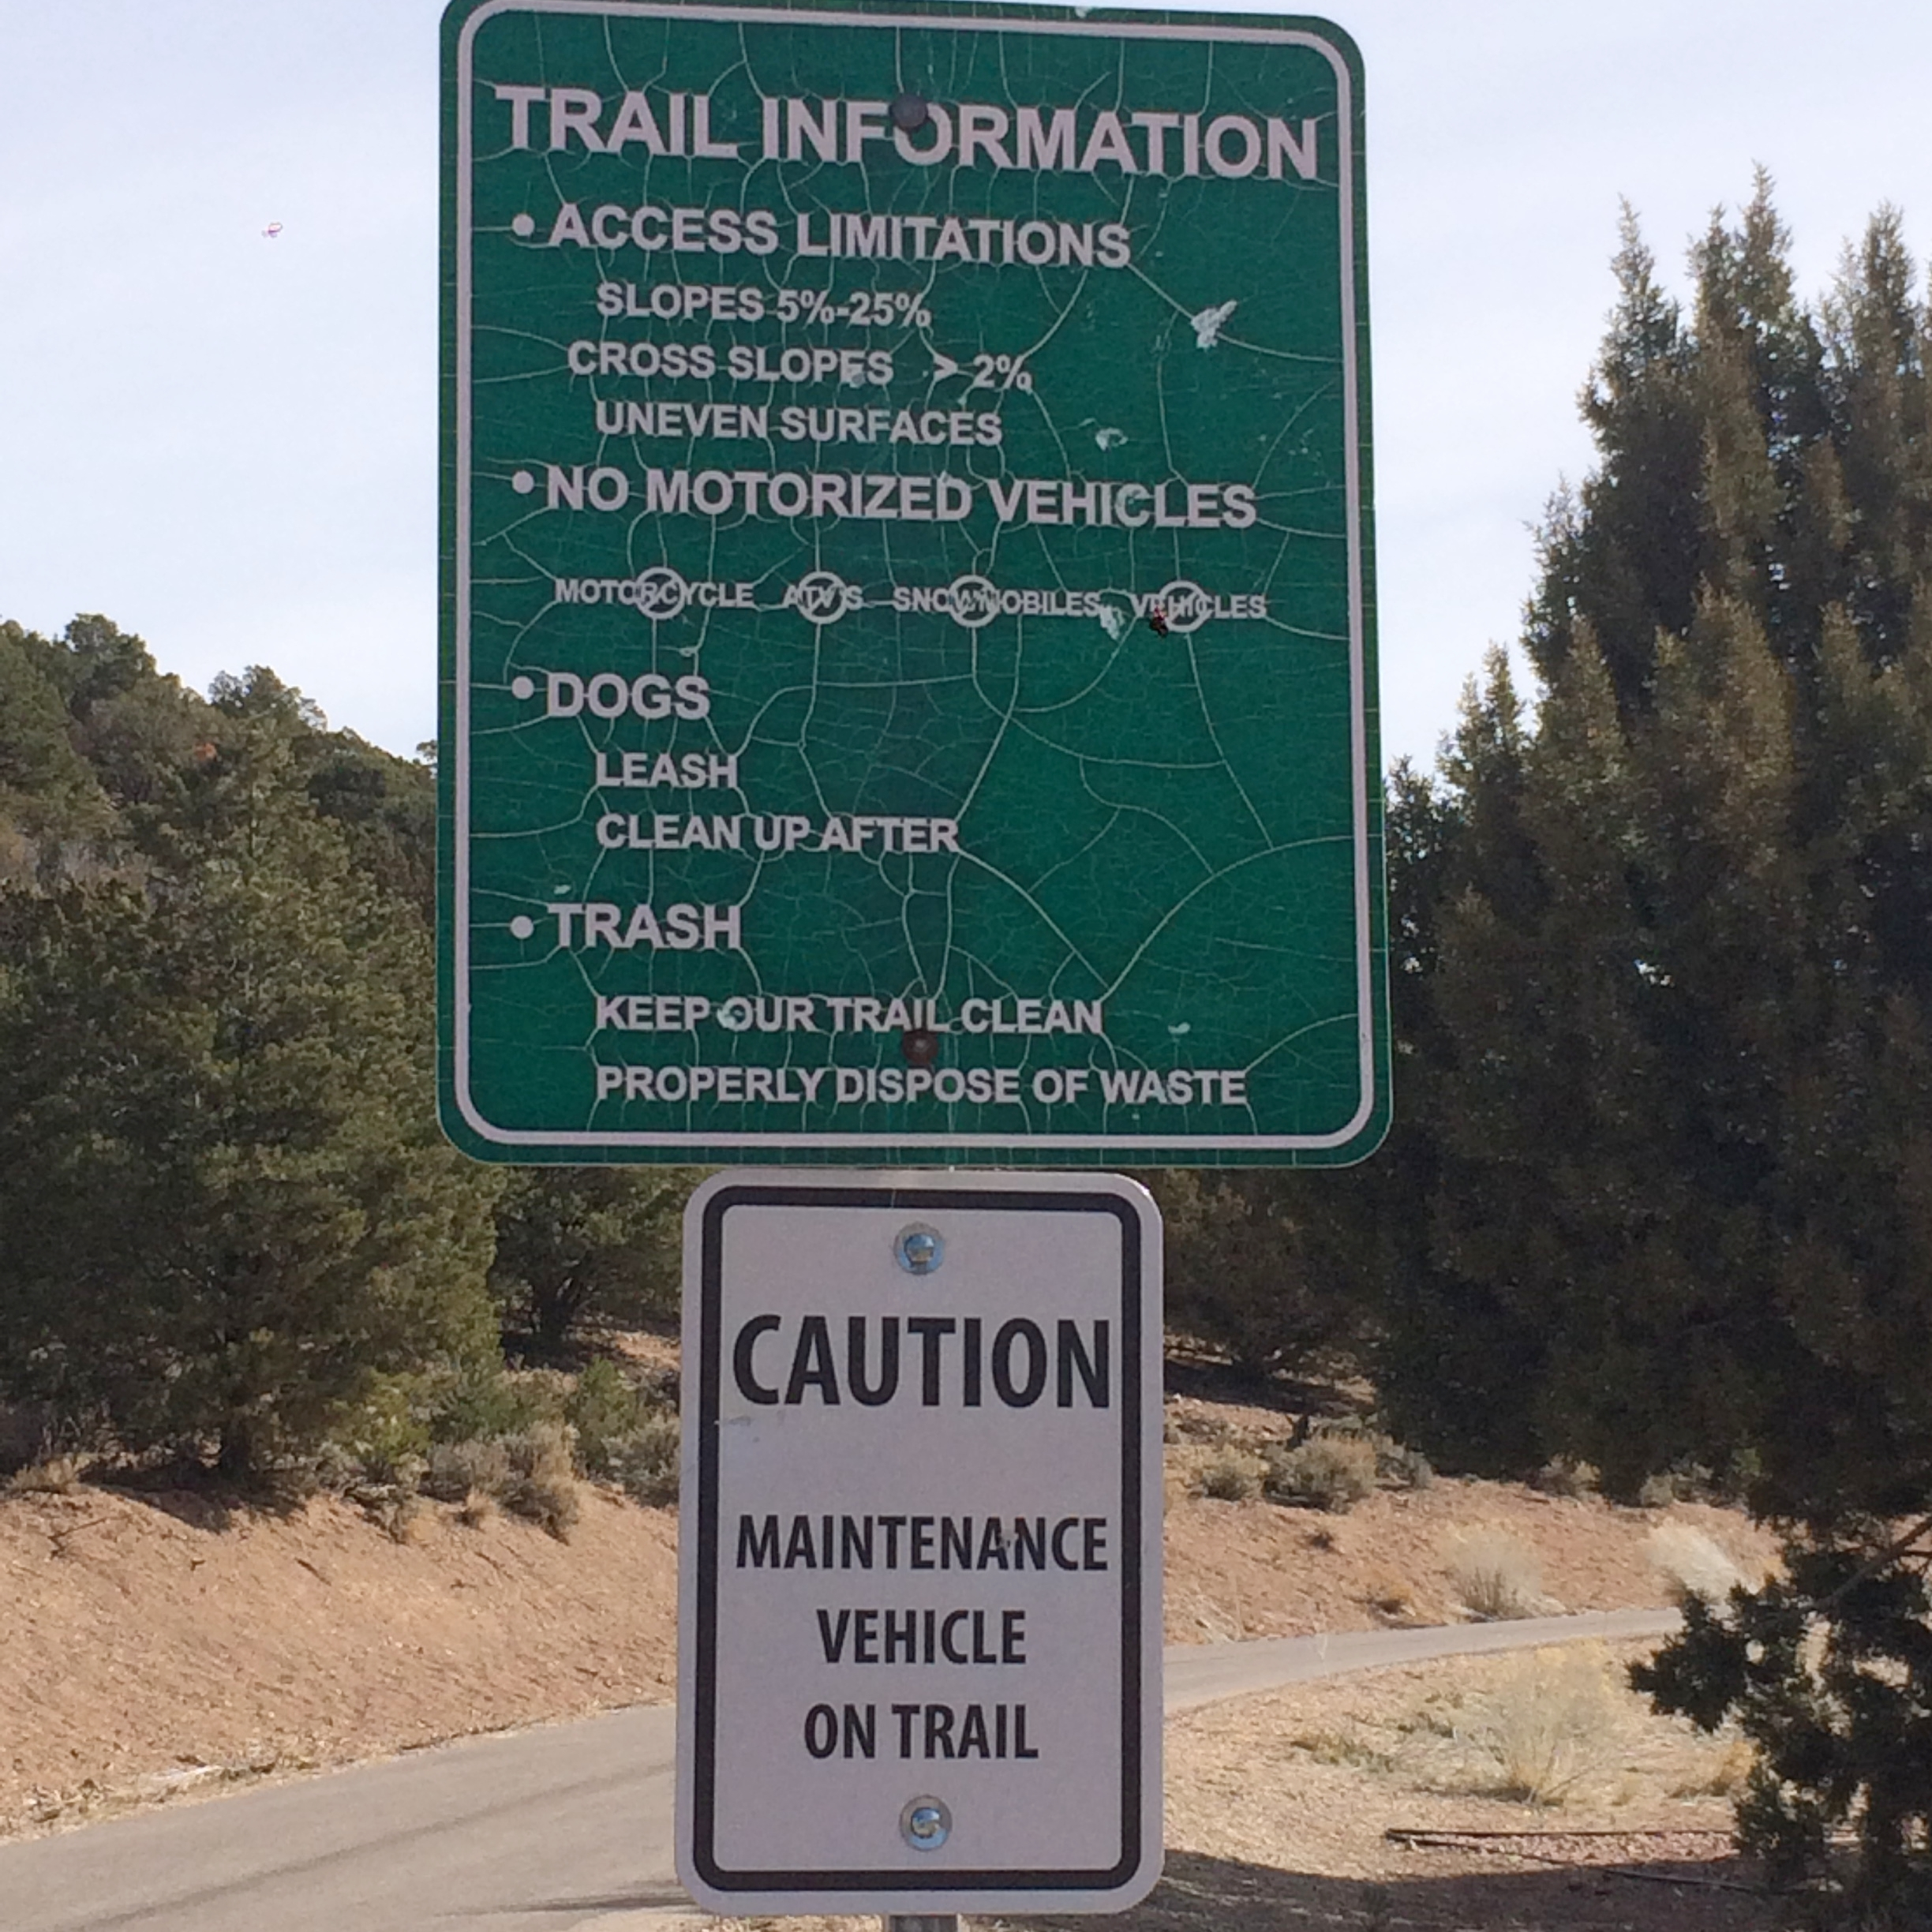 West Trail Head - Trail Information Sign